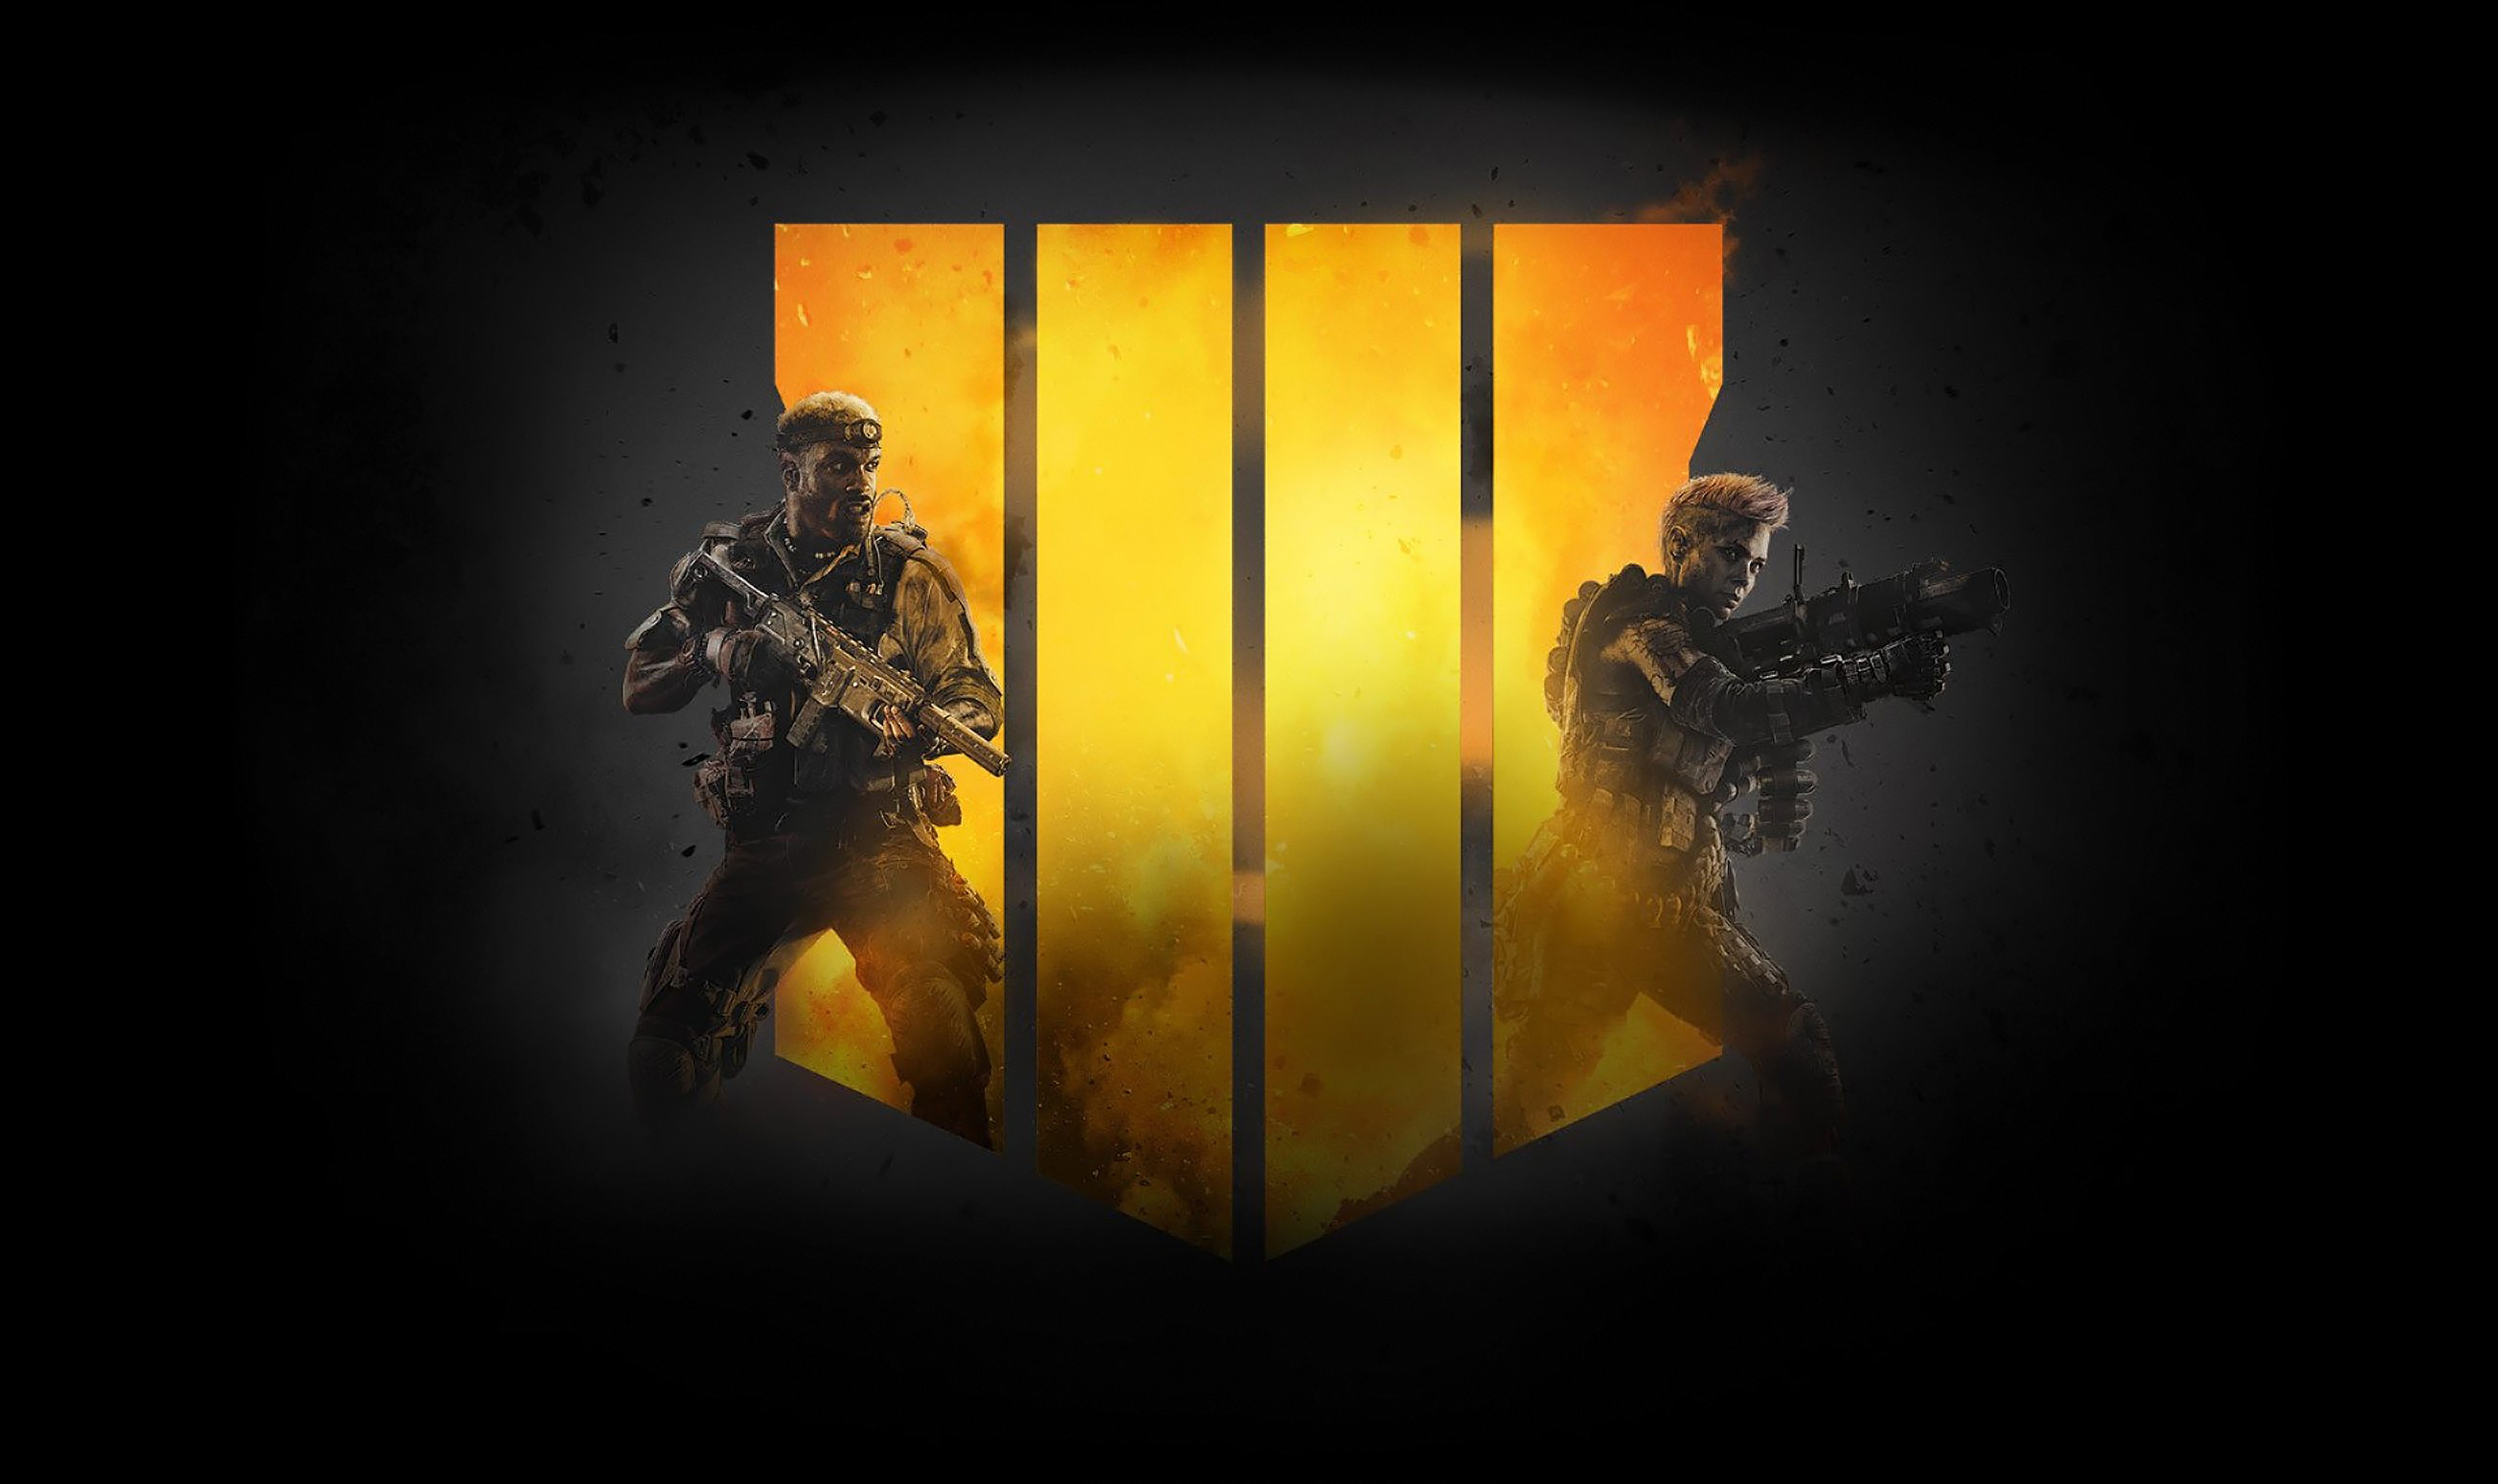 2018 Call Of Duty Black Ops 4 Hd Games 4k Wallpapers Images